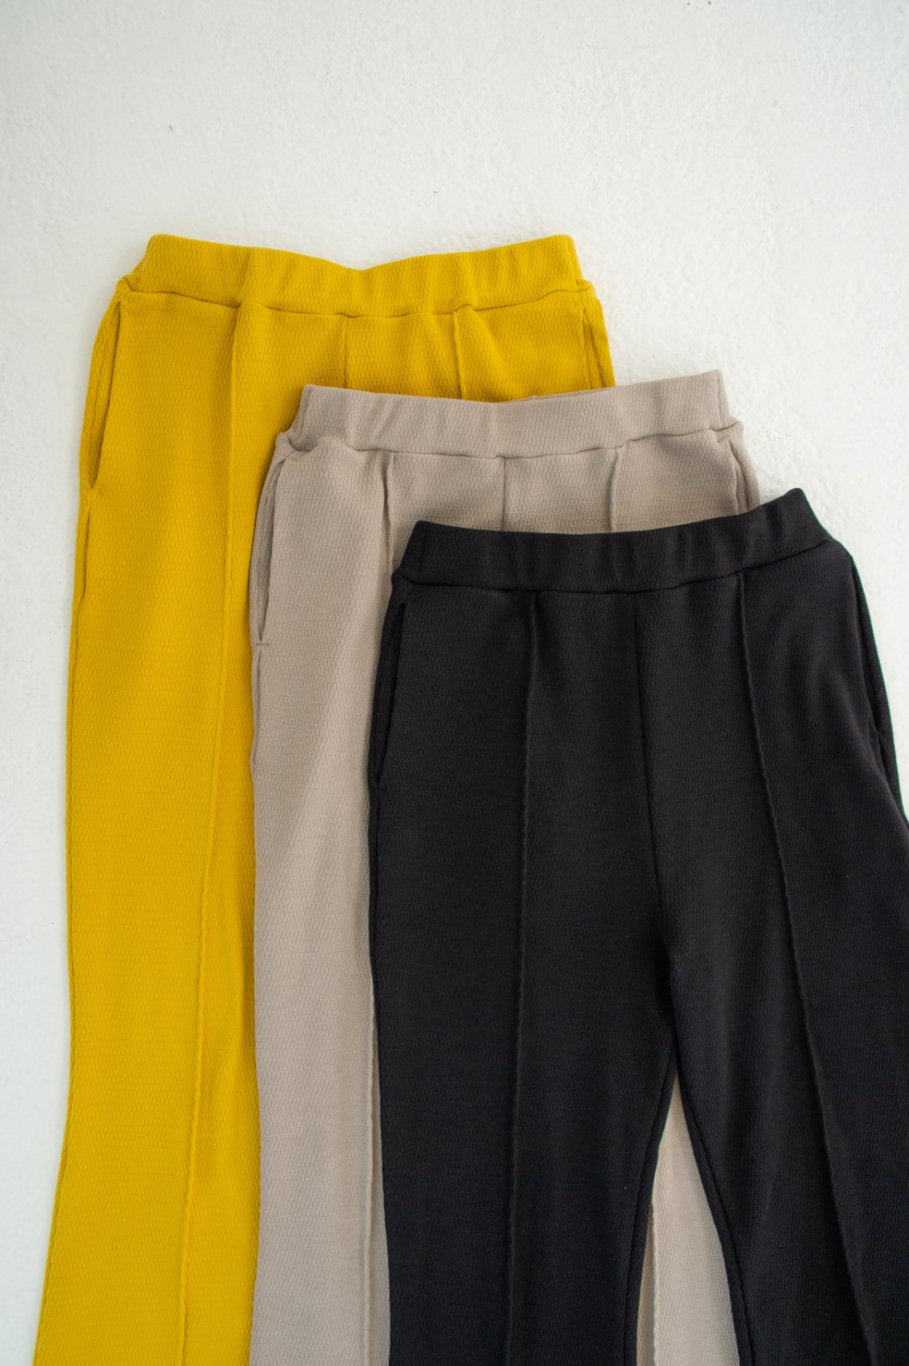 Thermal flare pants